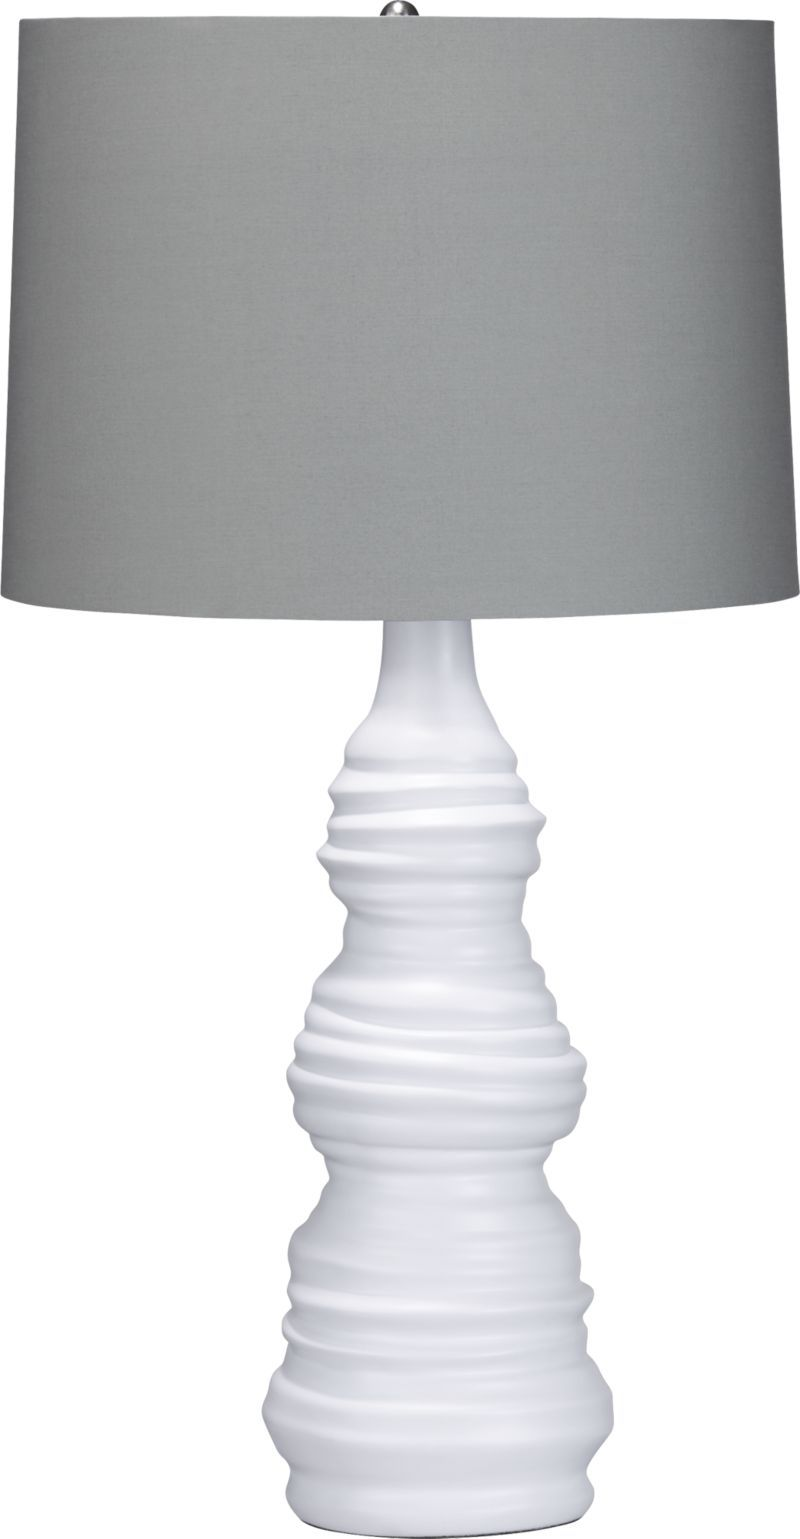 Nina table lamp i crate and barrel home lighting pinterest nina table lamp i crate and barrel geotapseo Gallery